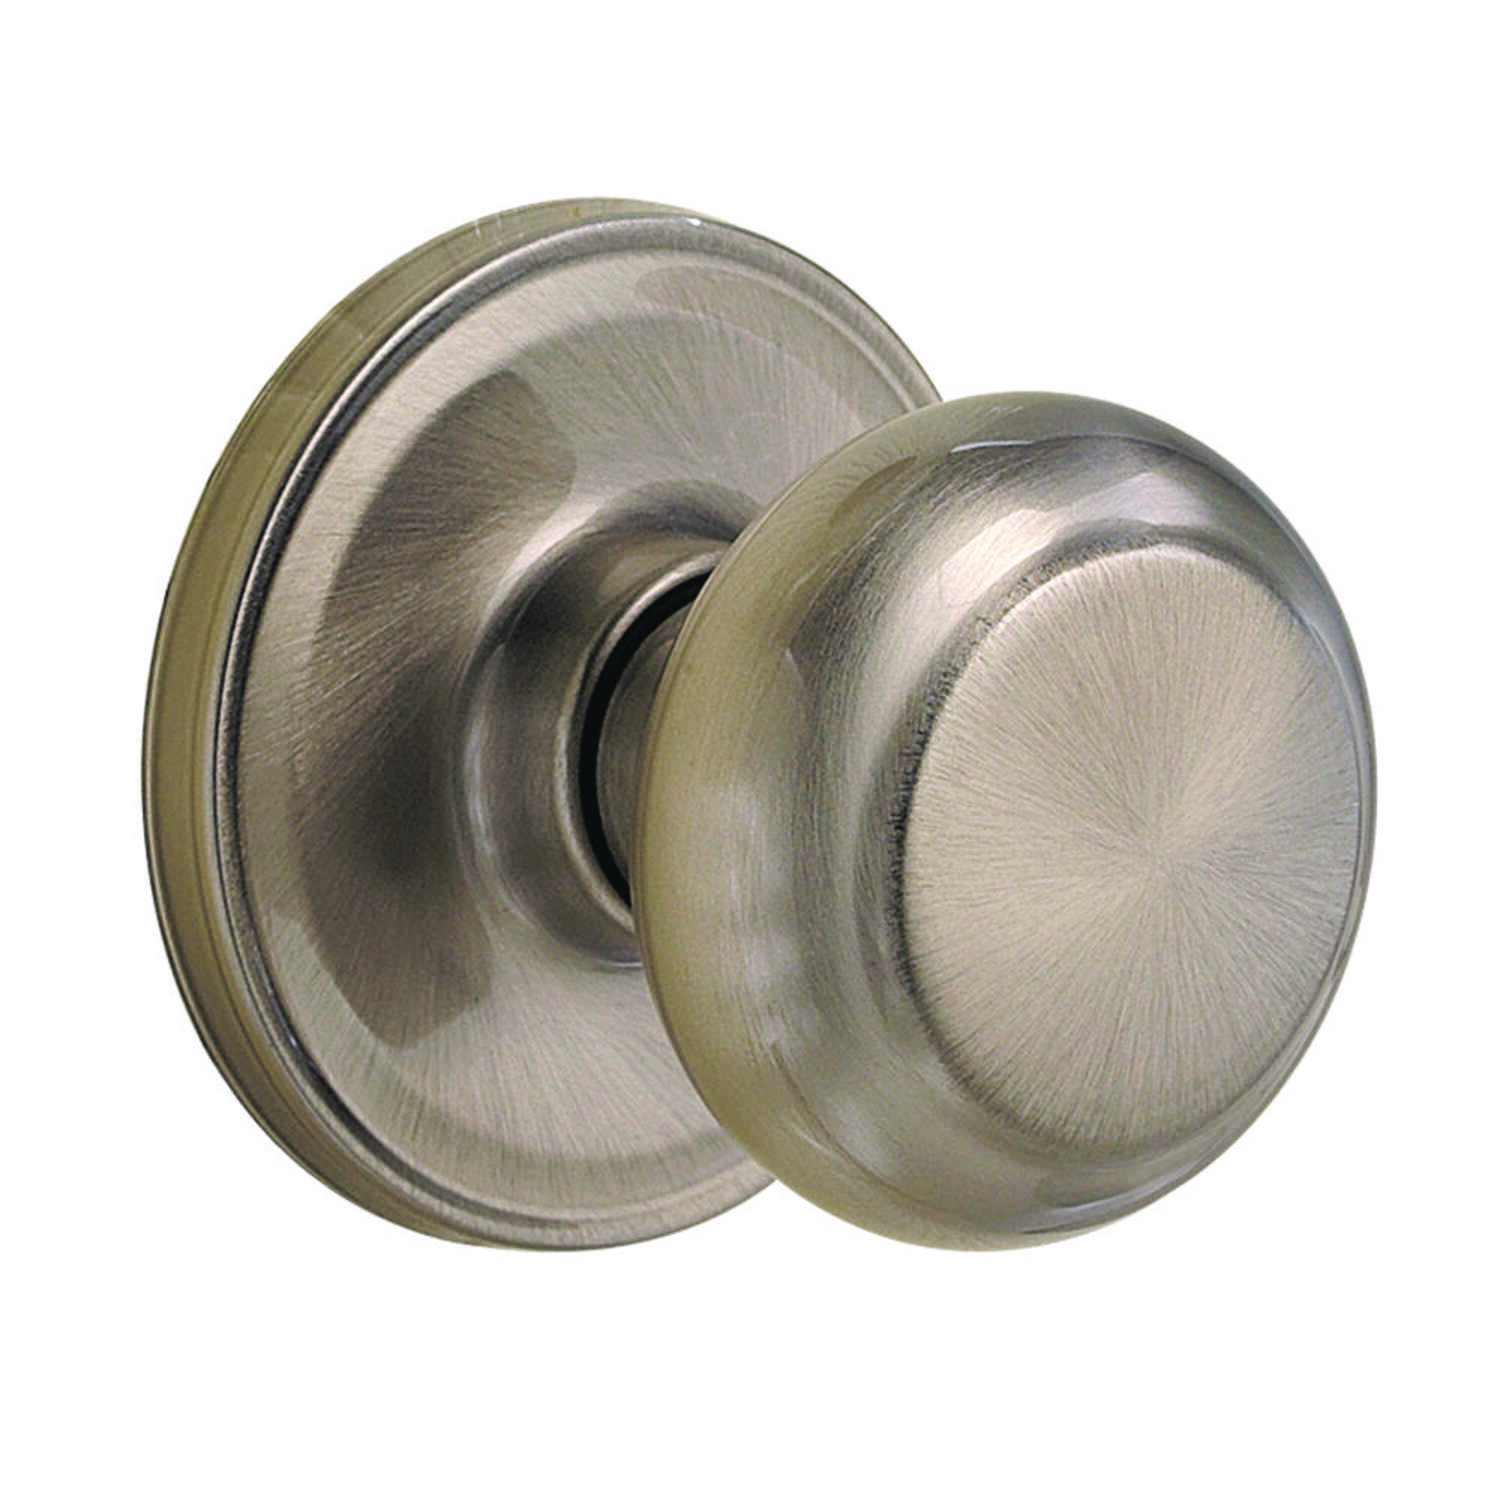 Weiser  Troy  Satin Nickel  Passage Lockset  ANSI/BHMA Grade 2  1-3/4 in.